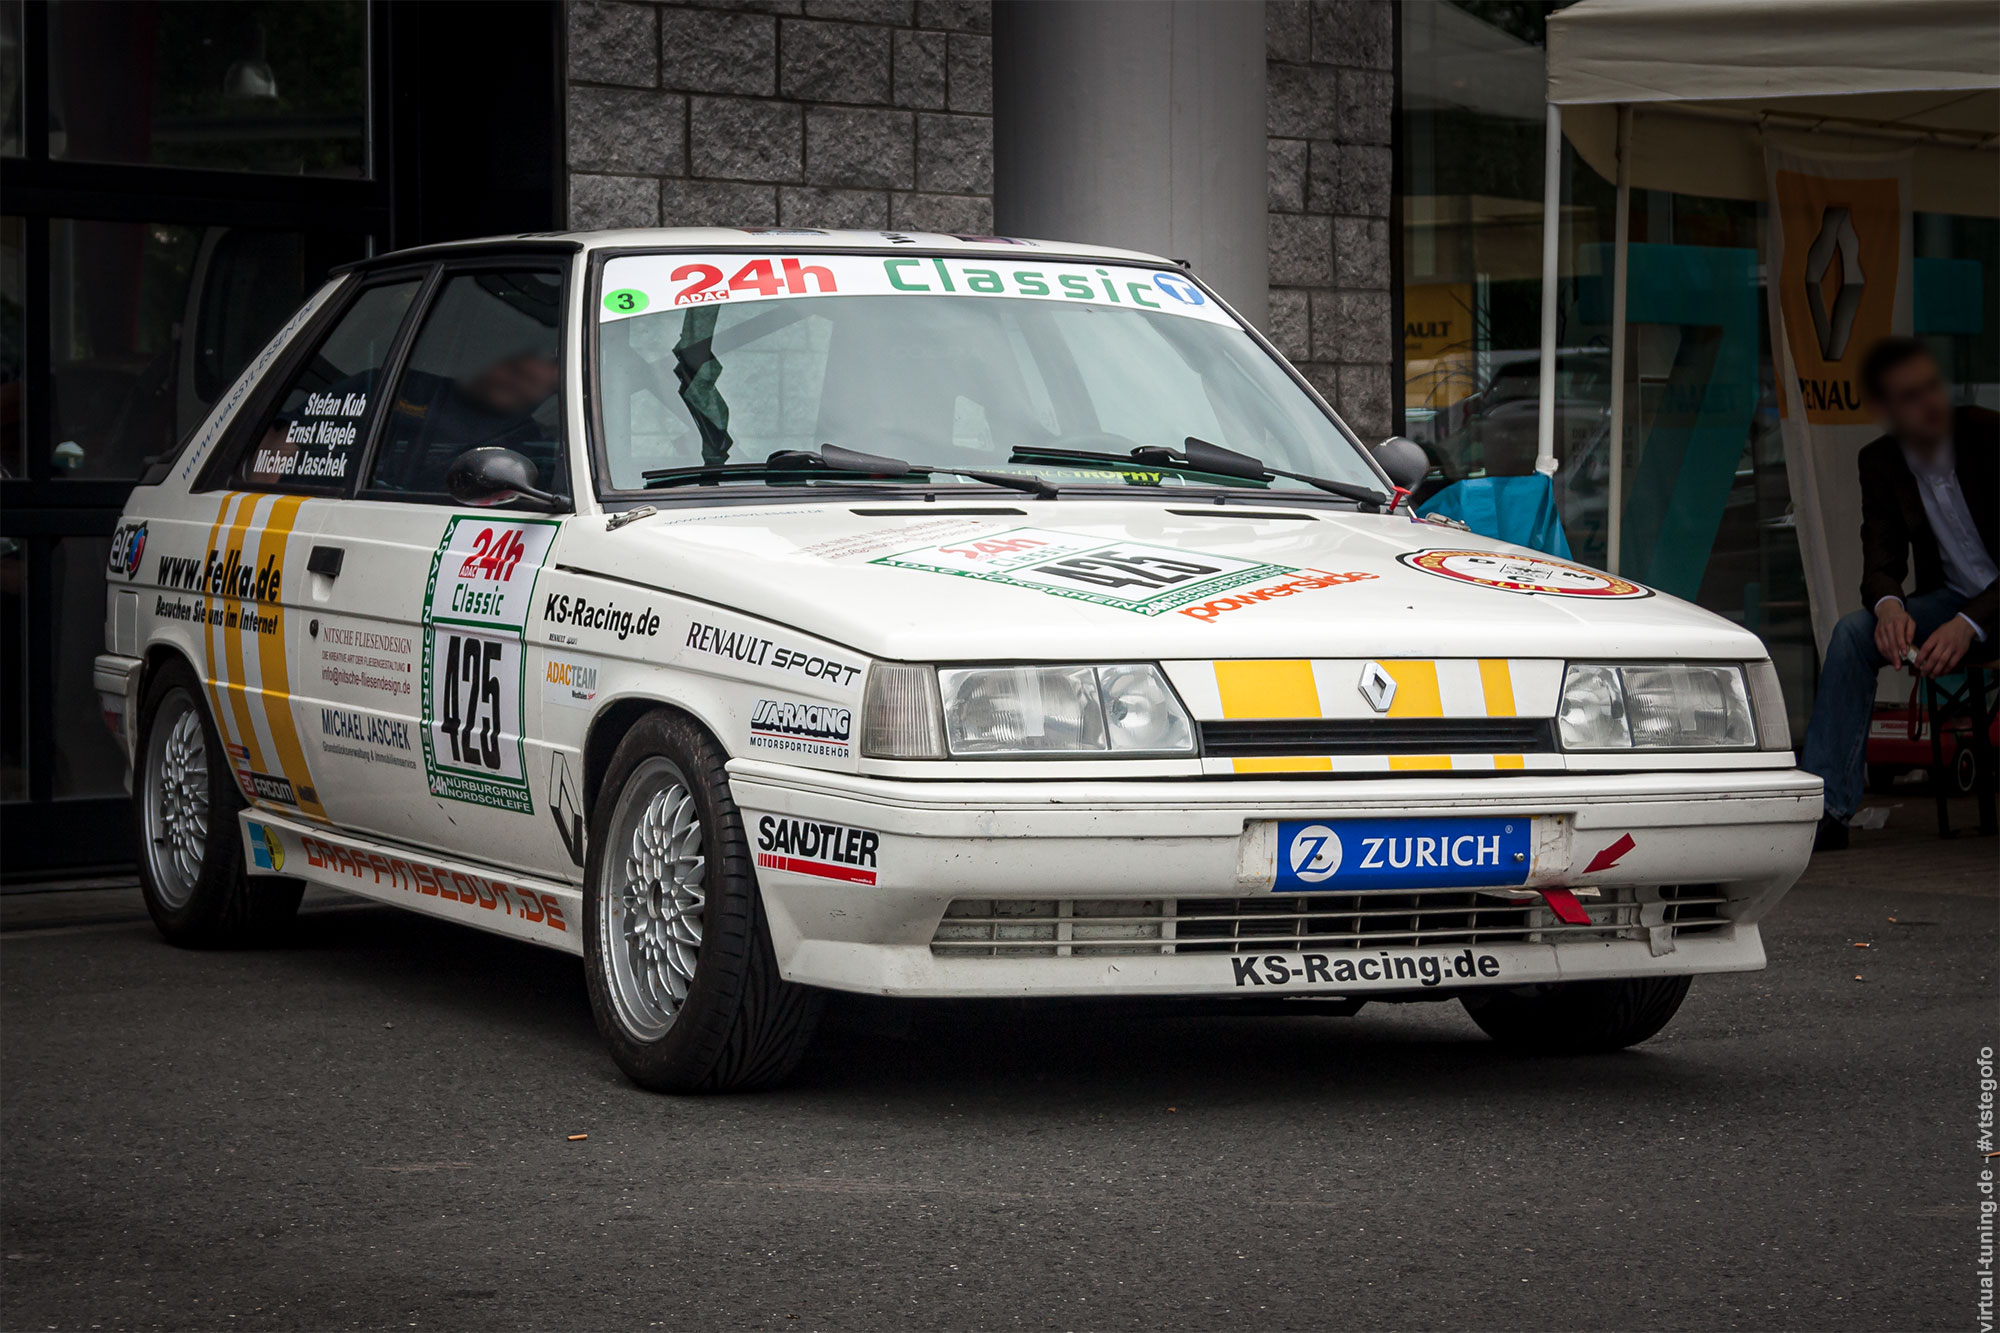 Renault 11 Turbo (KS-Racing) - Renault Treffen in Bochum 2013